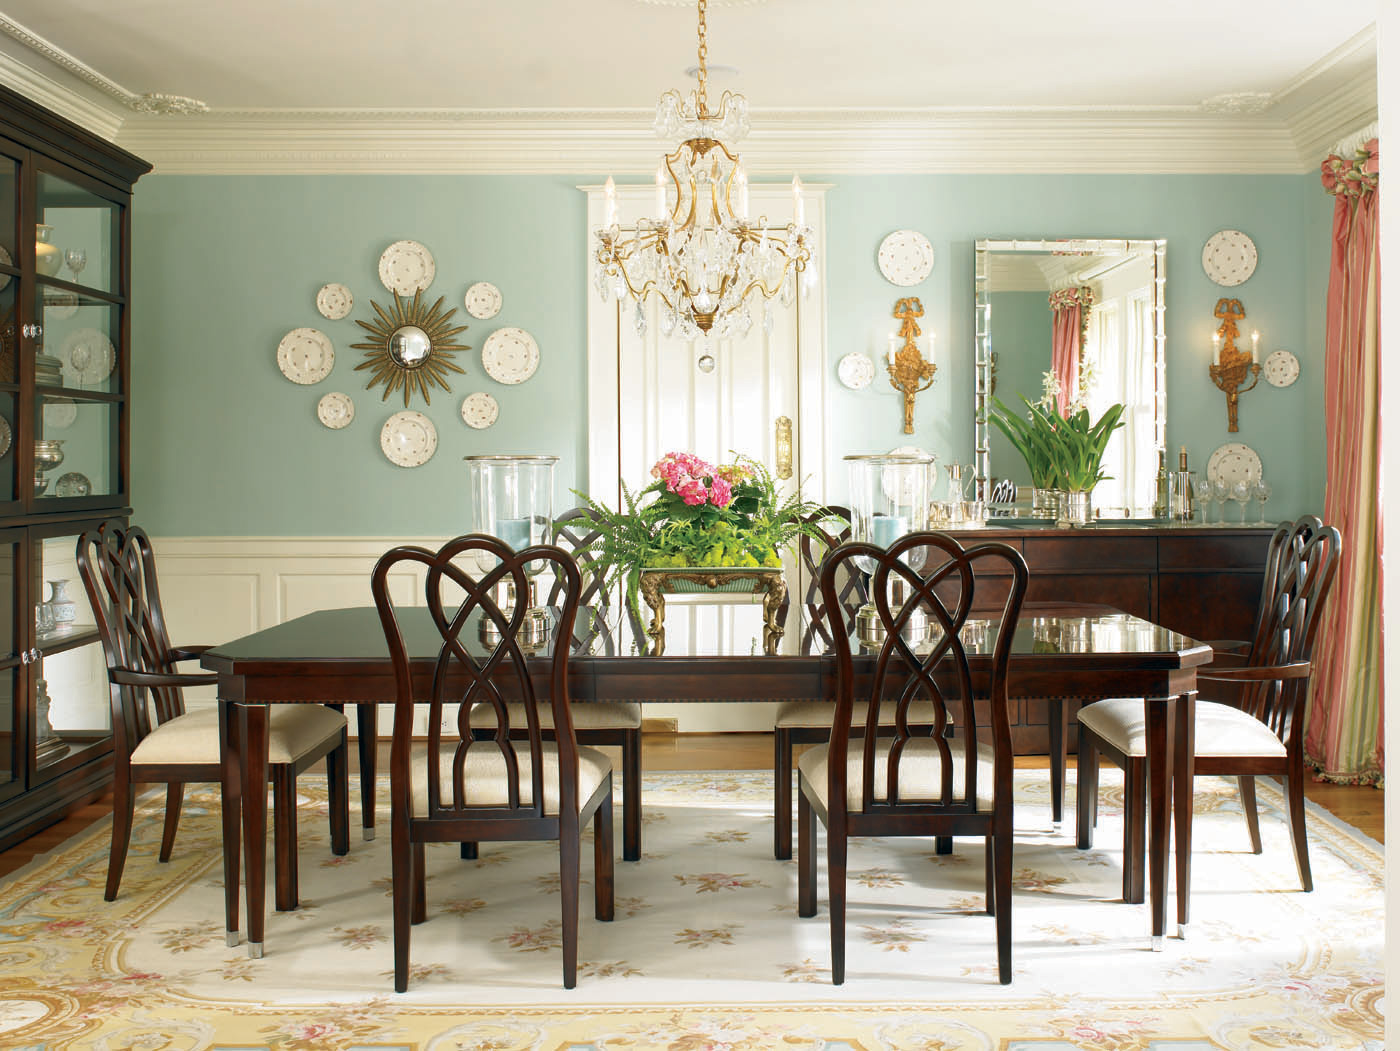 DINING ROOMS THAT INSPIRE Find Decorating Inspiration For Your Home